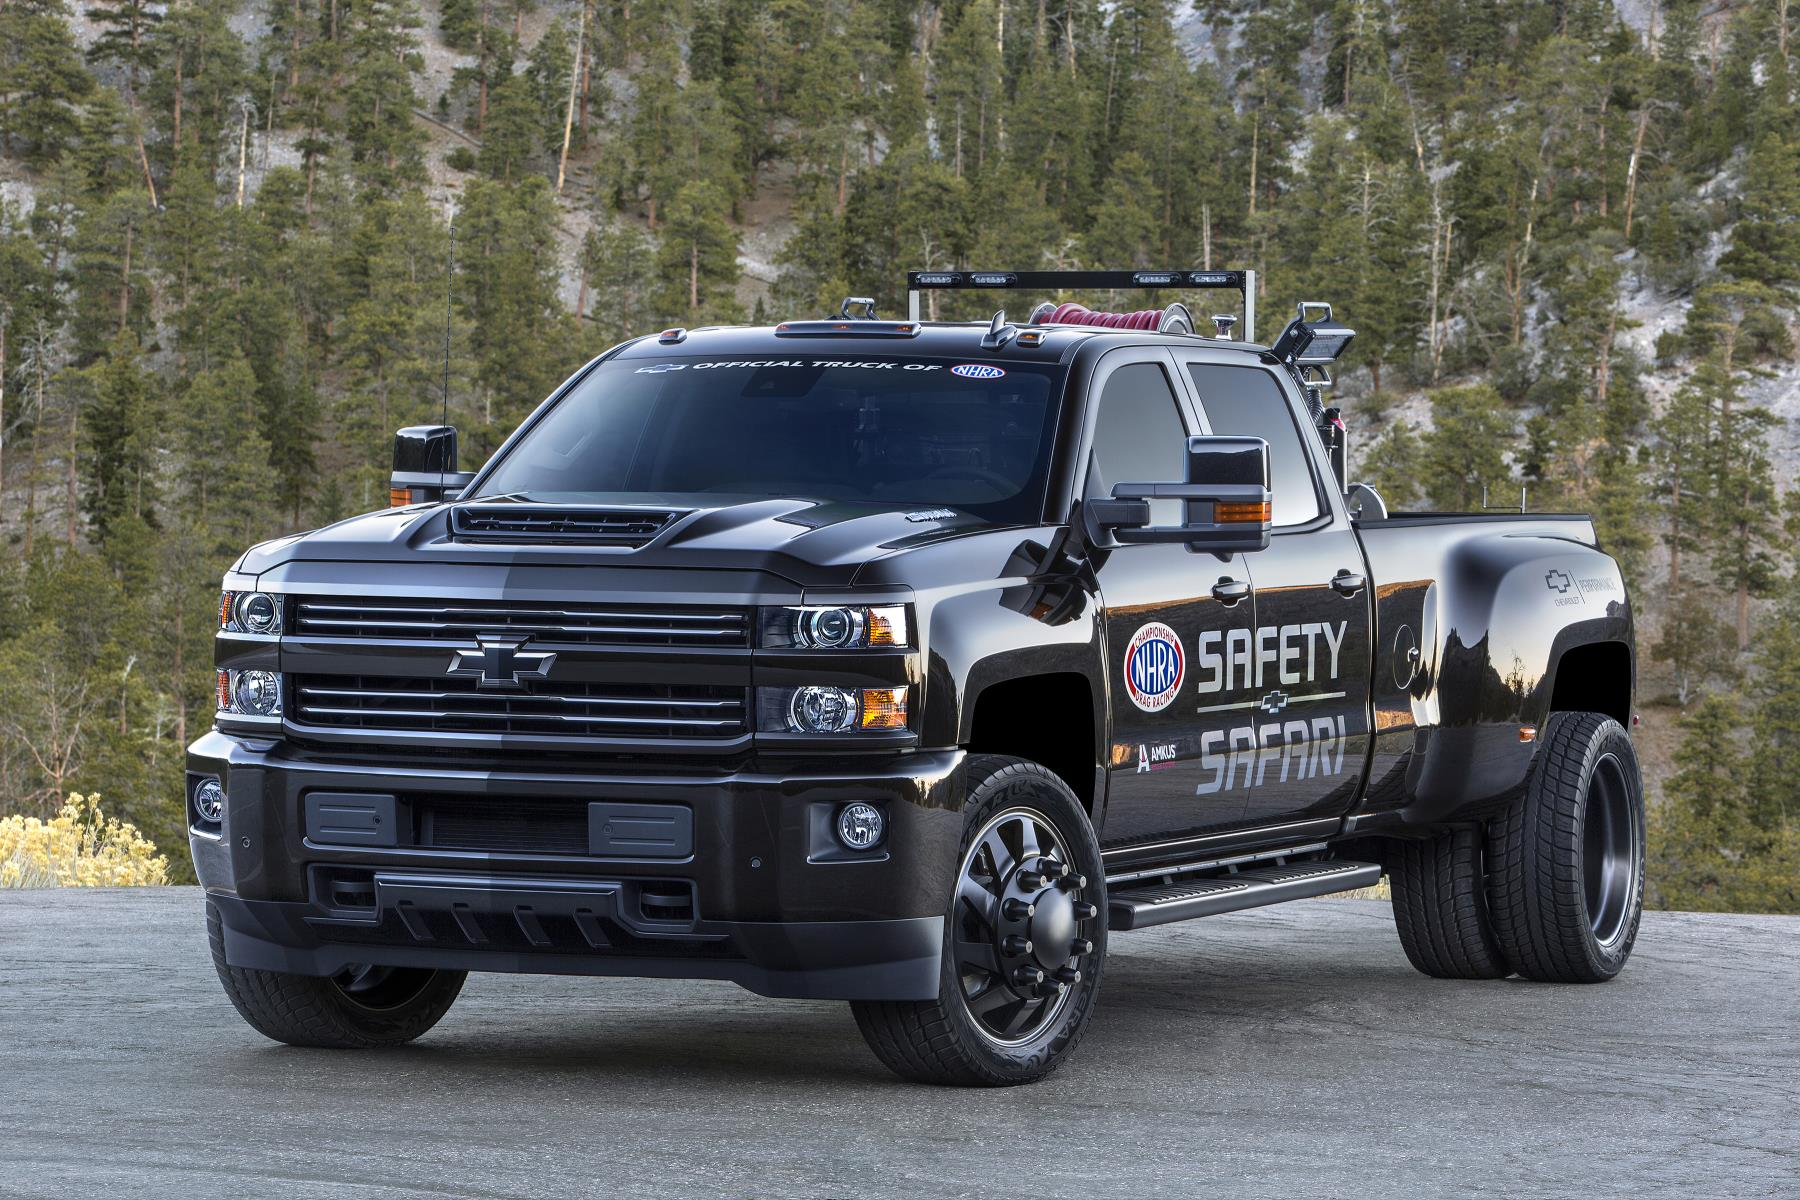 2018 chevrolet silverado 3500hd nhra safety safari concept. Black Bedroom Furniture Sets. Home Design Ideas